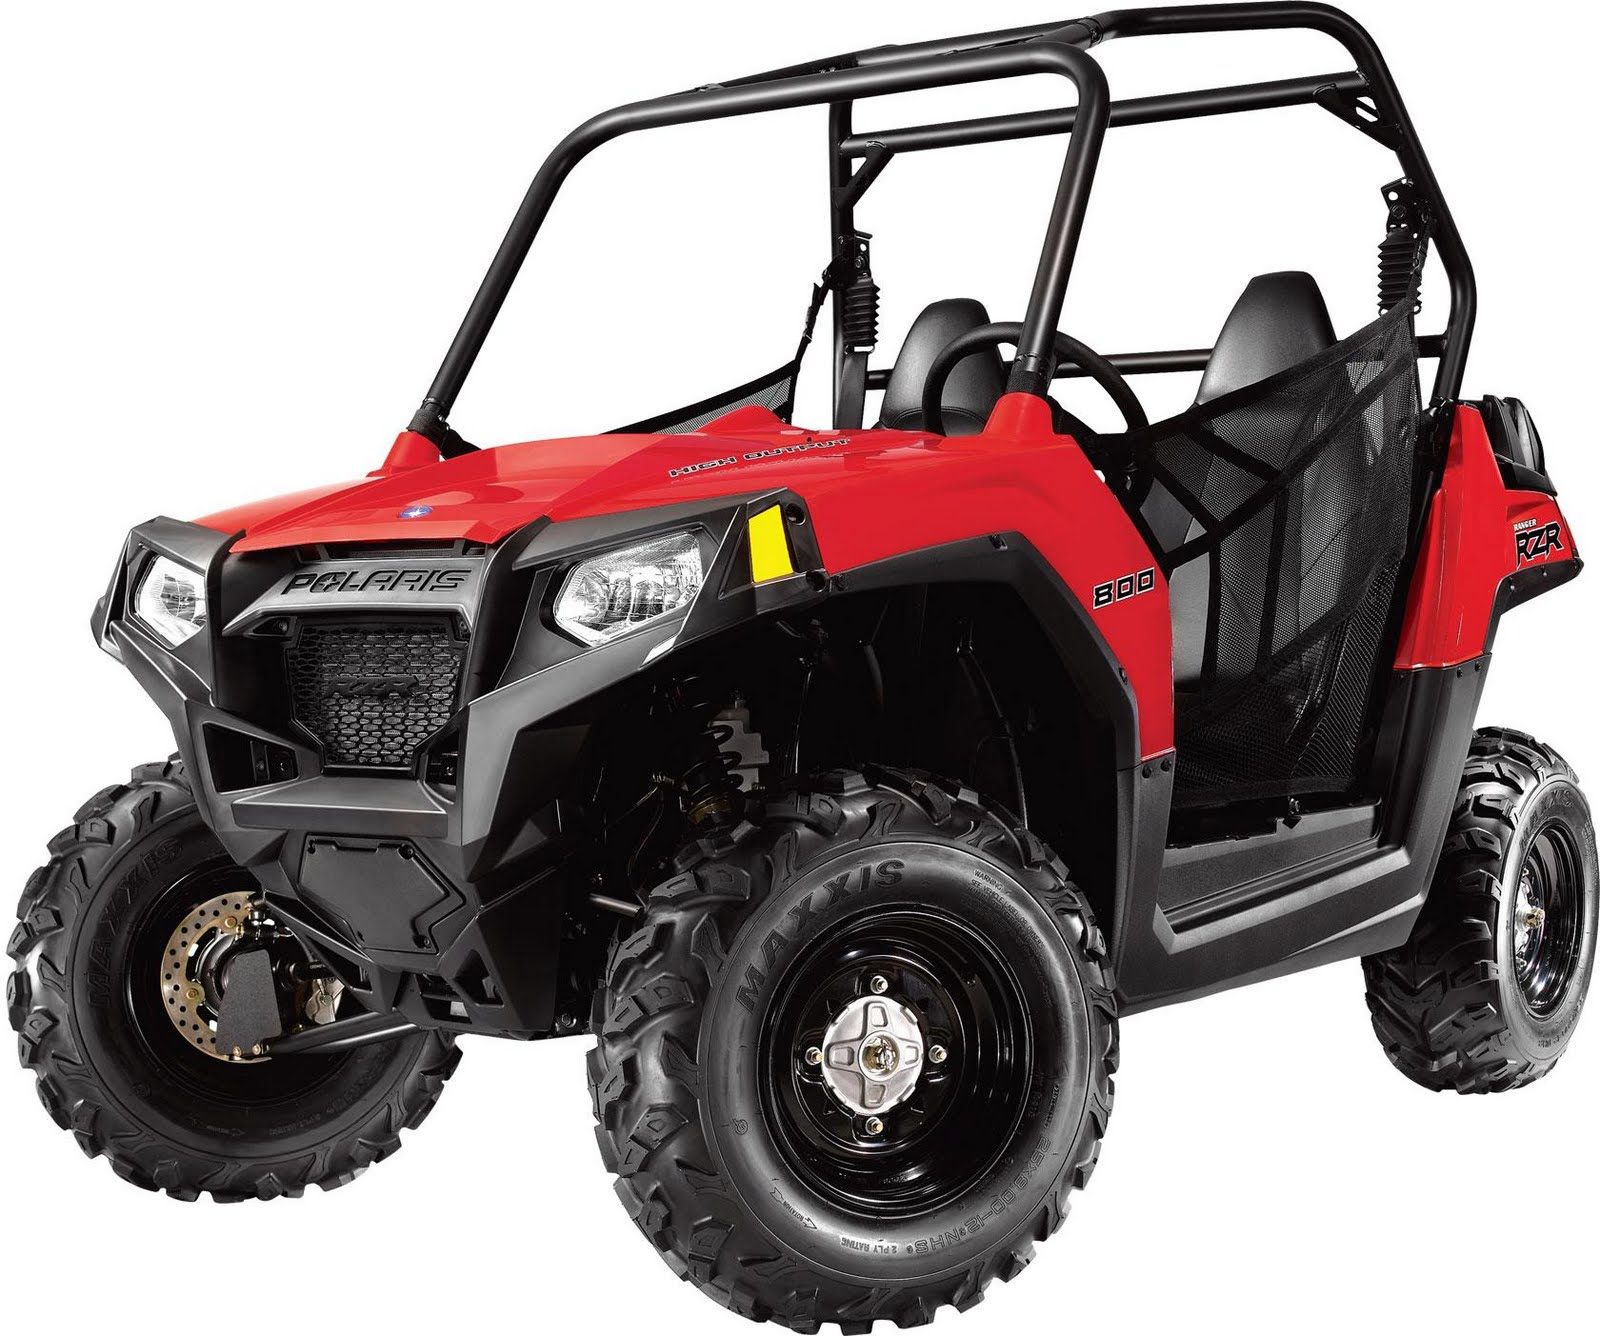 2011 polaris ranger rzr 800 specifications and pictures latest gadget news car news. Black Bedroom Furniture Sets. Home Design Ideas